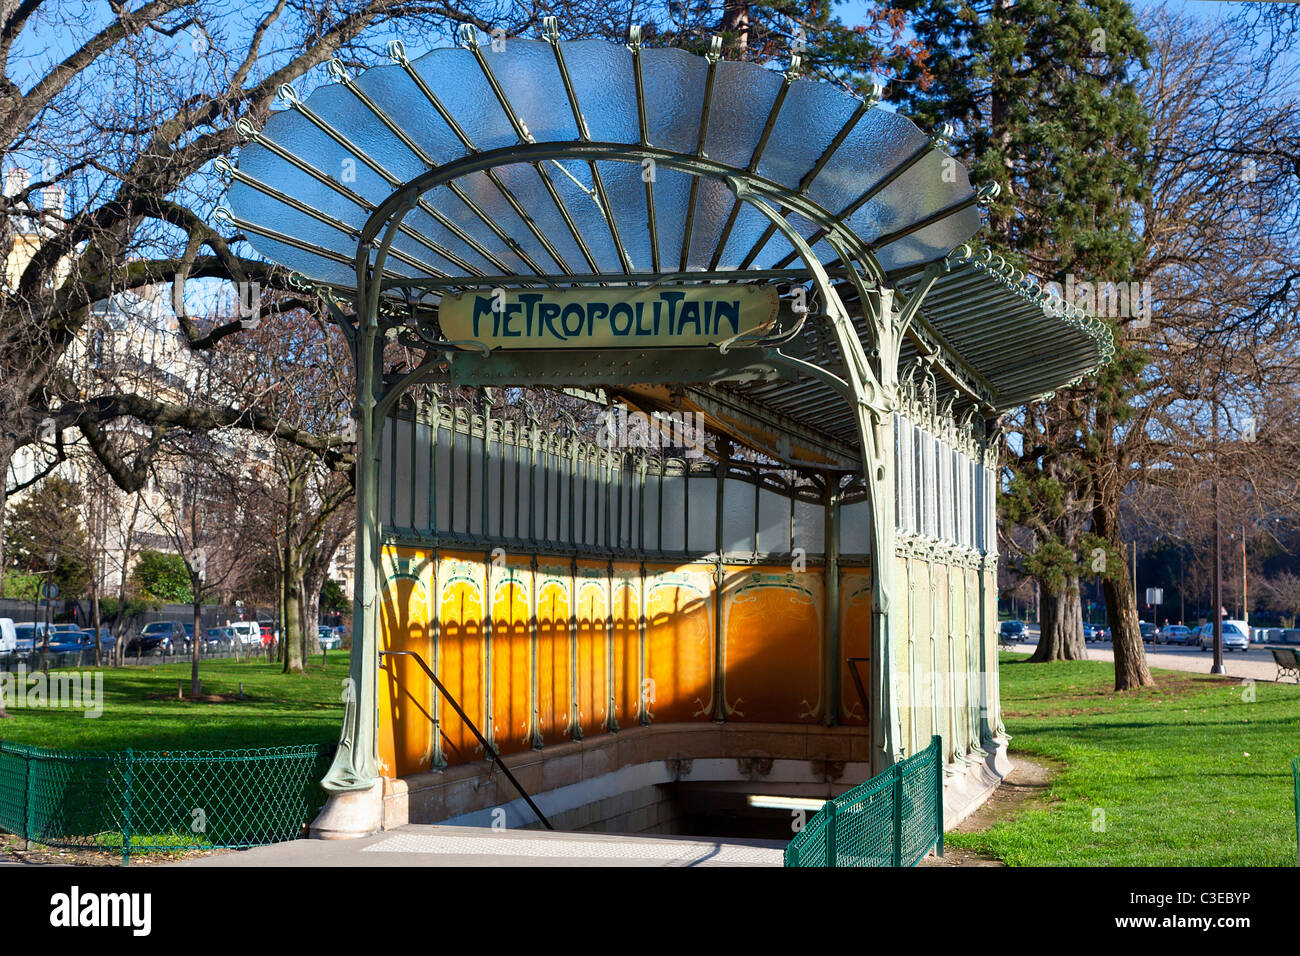 Paris, Metro Porte Dauphine by Hector Germain Guimard - Stock Image